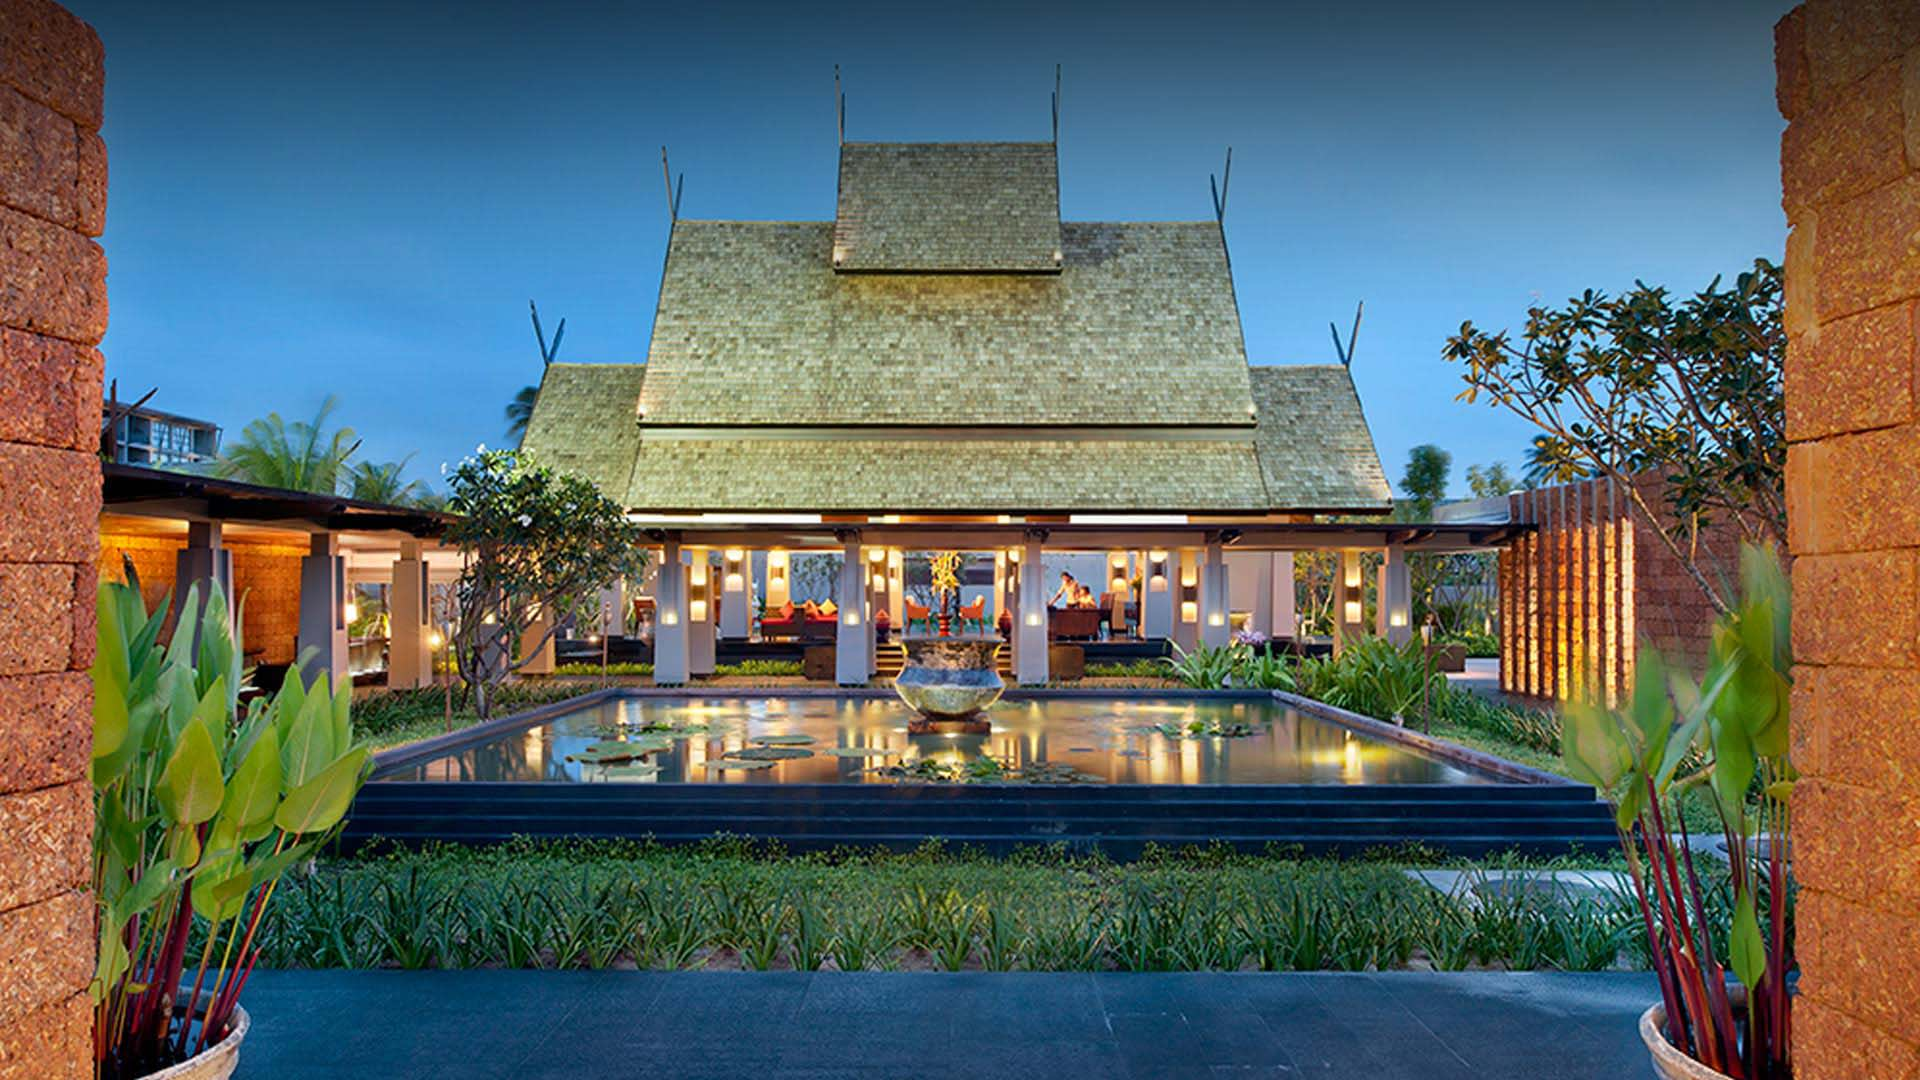 https://assets.anantara.com/image/upload/q_auto,f_auto/media/minor/anantara/images/anantara-vacation-club-mai-khao-phuket/the-resort/anantara_vacation_club_mai_khao_entrance_header_1920x1080.jpg